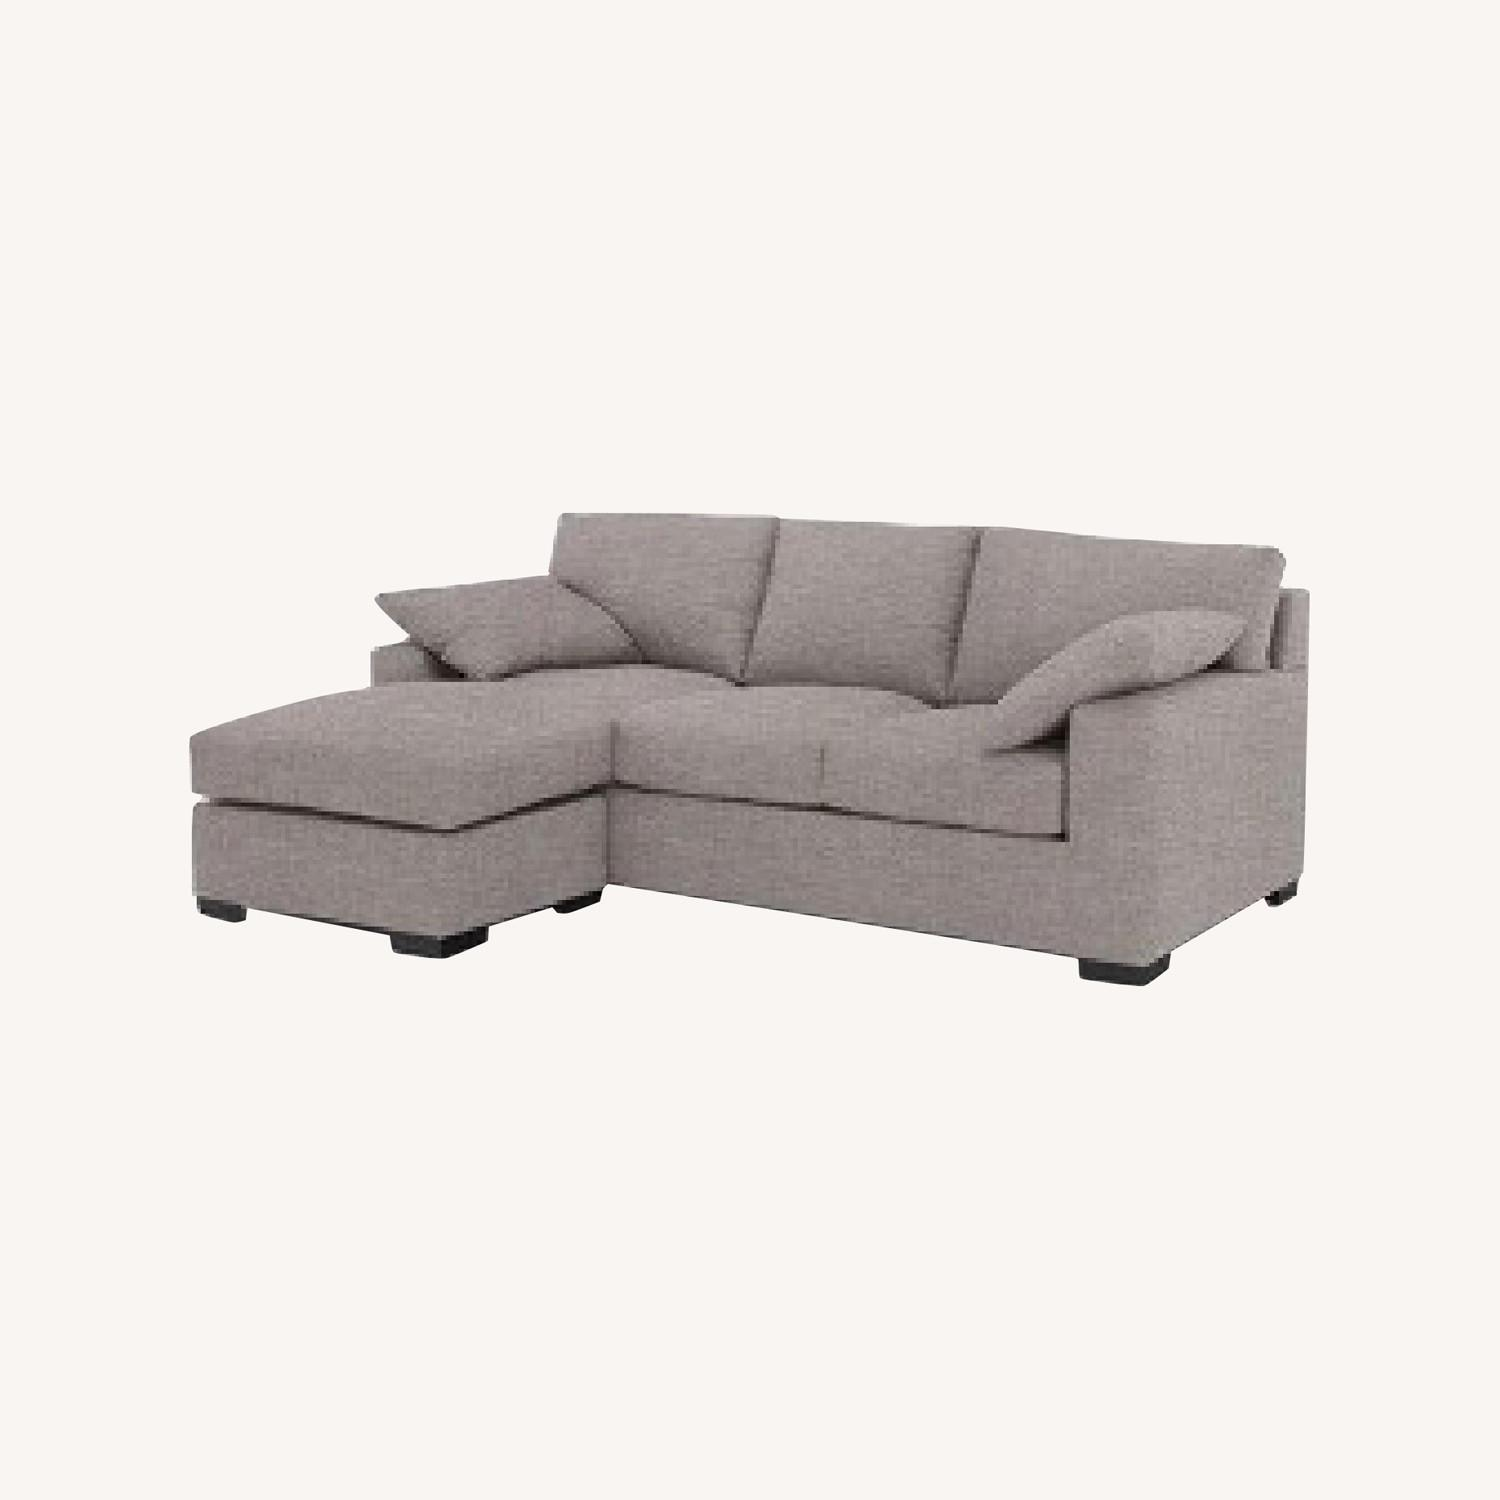 Comfy Large Sofa With Chase (L) - image-0